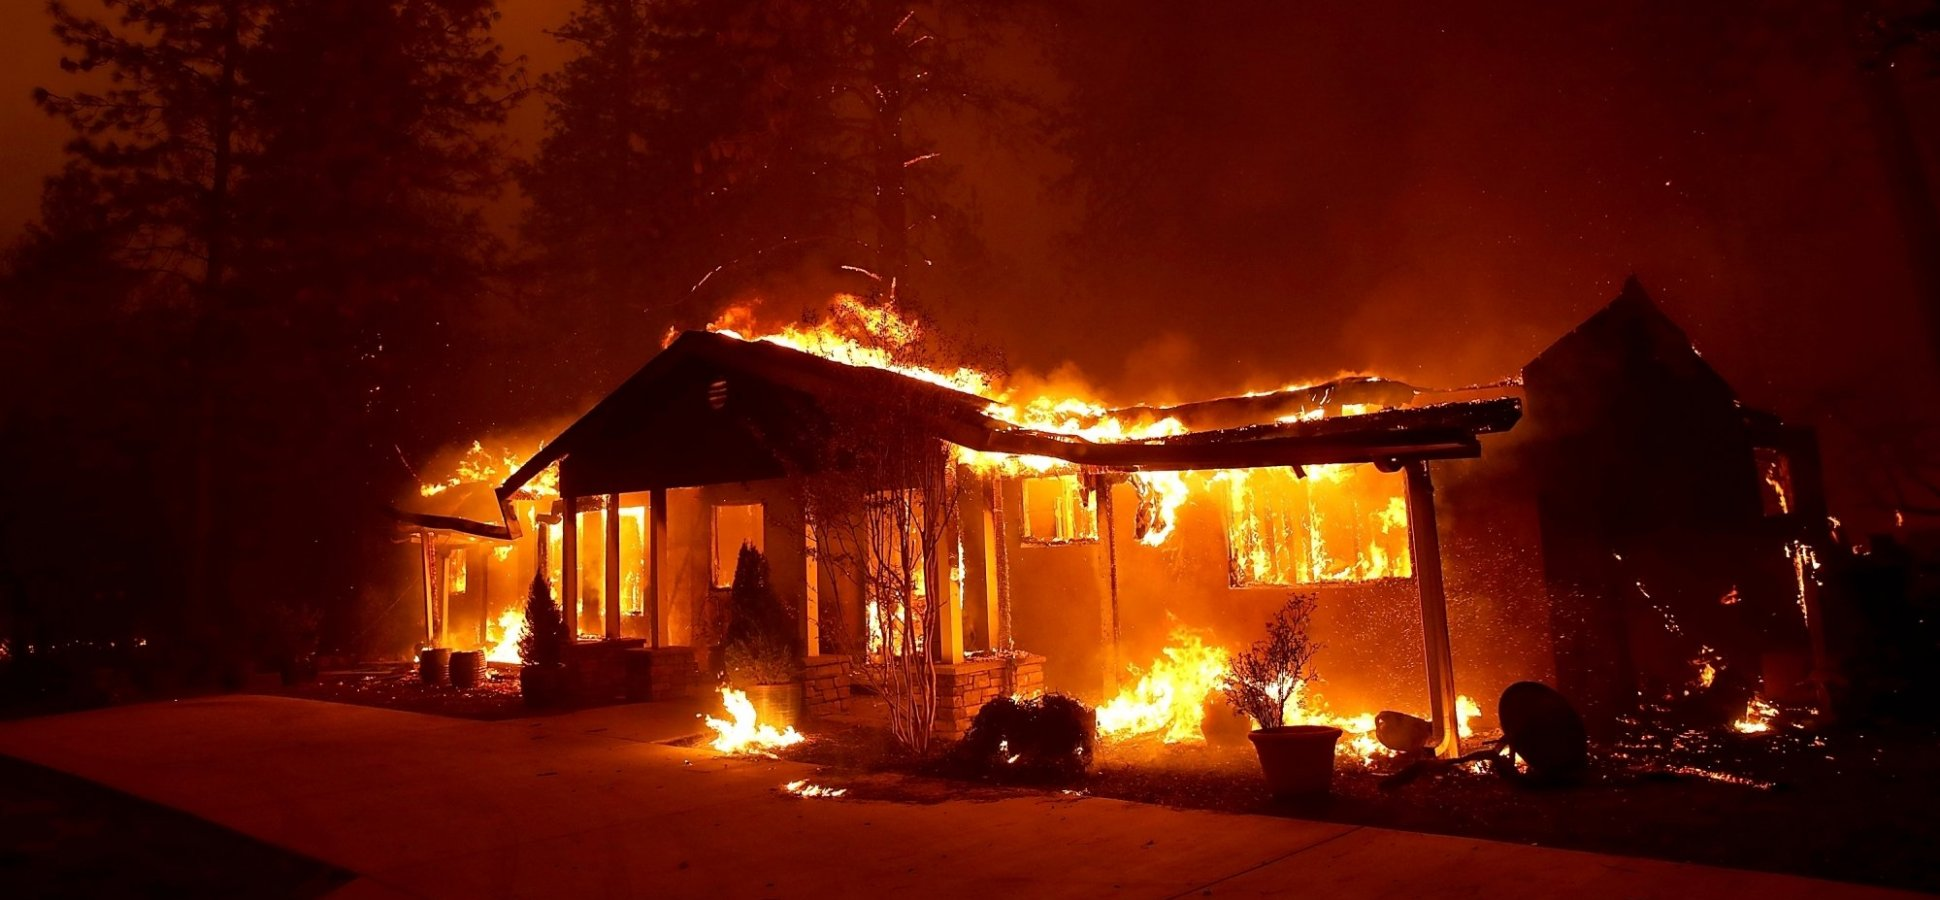 A Man Whose House Was Ablaze in the California Fires Asked Whether He Should Come to Work. His Boss's Response Will Floor You